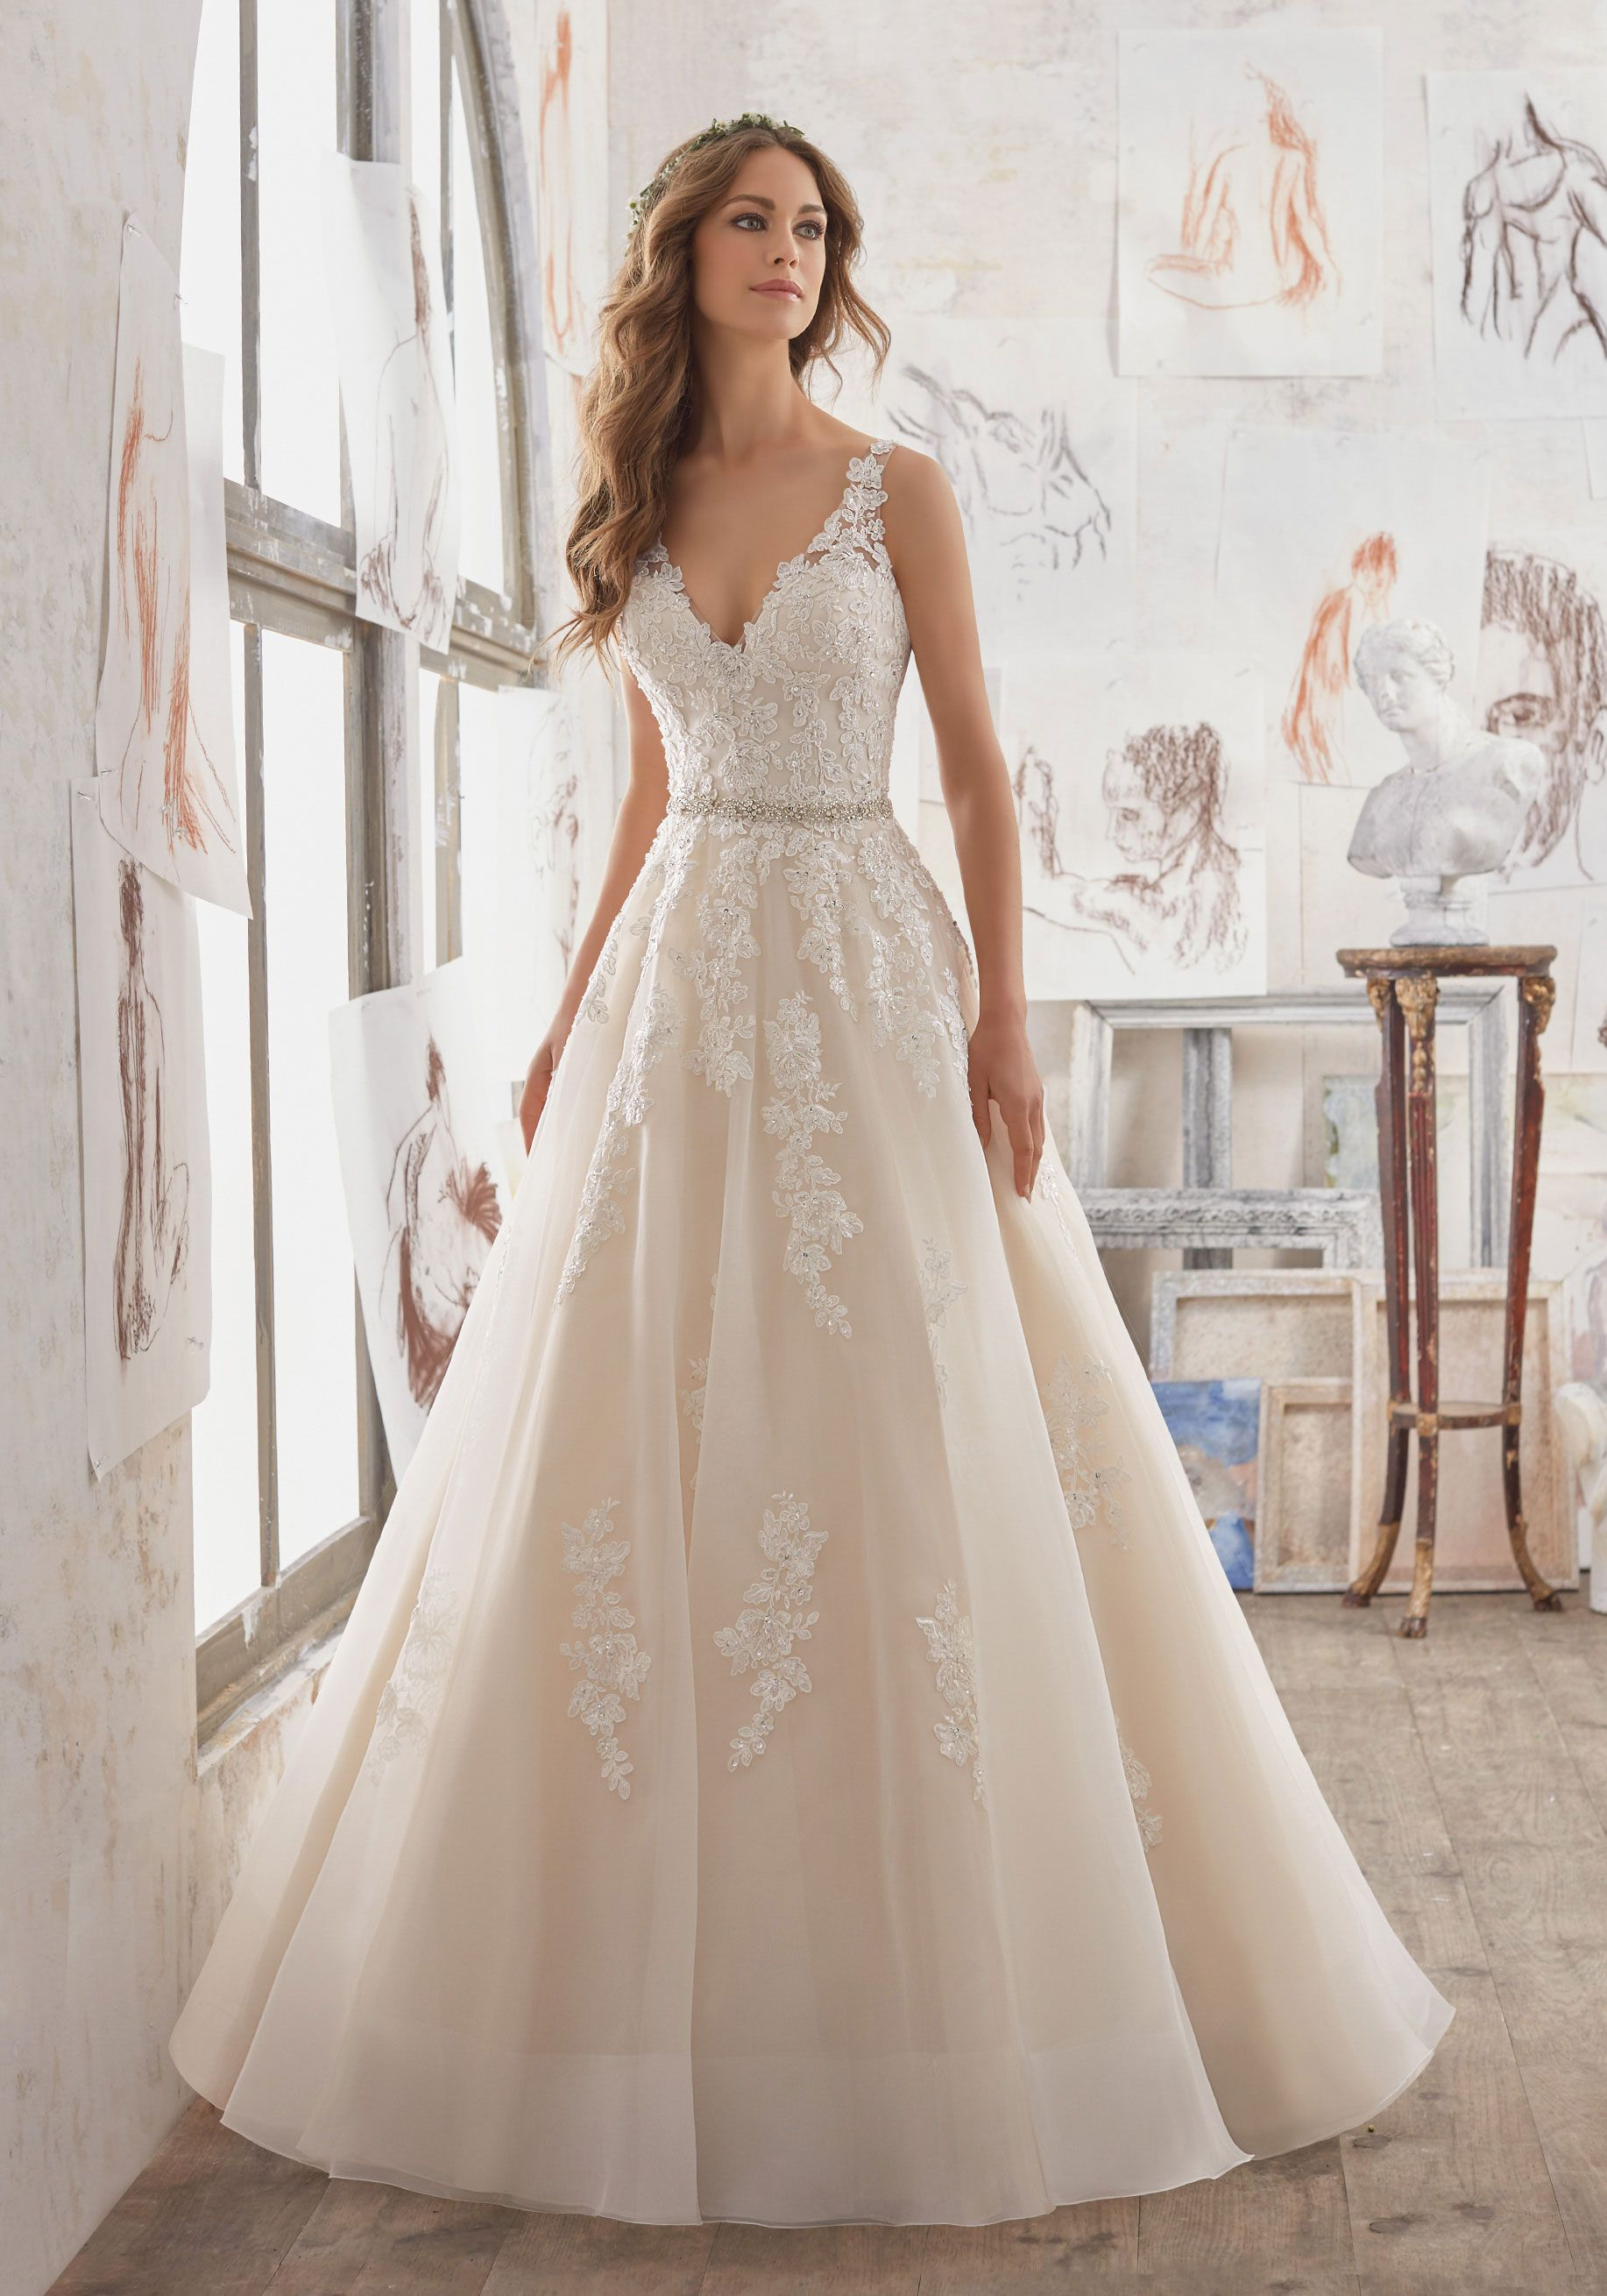 Designer Wedding Dresses and Bridal Gowns by Morilee This ALine